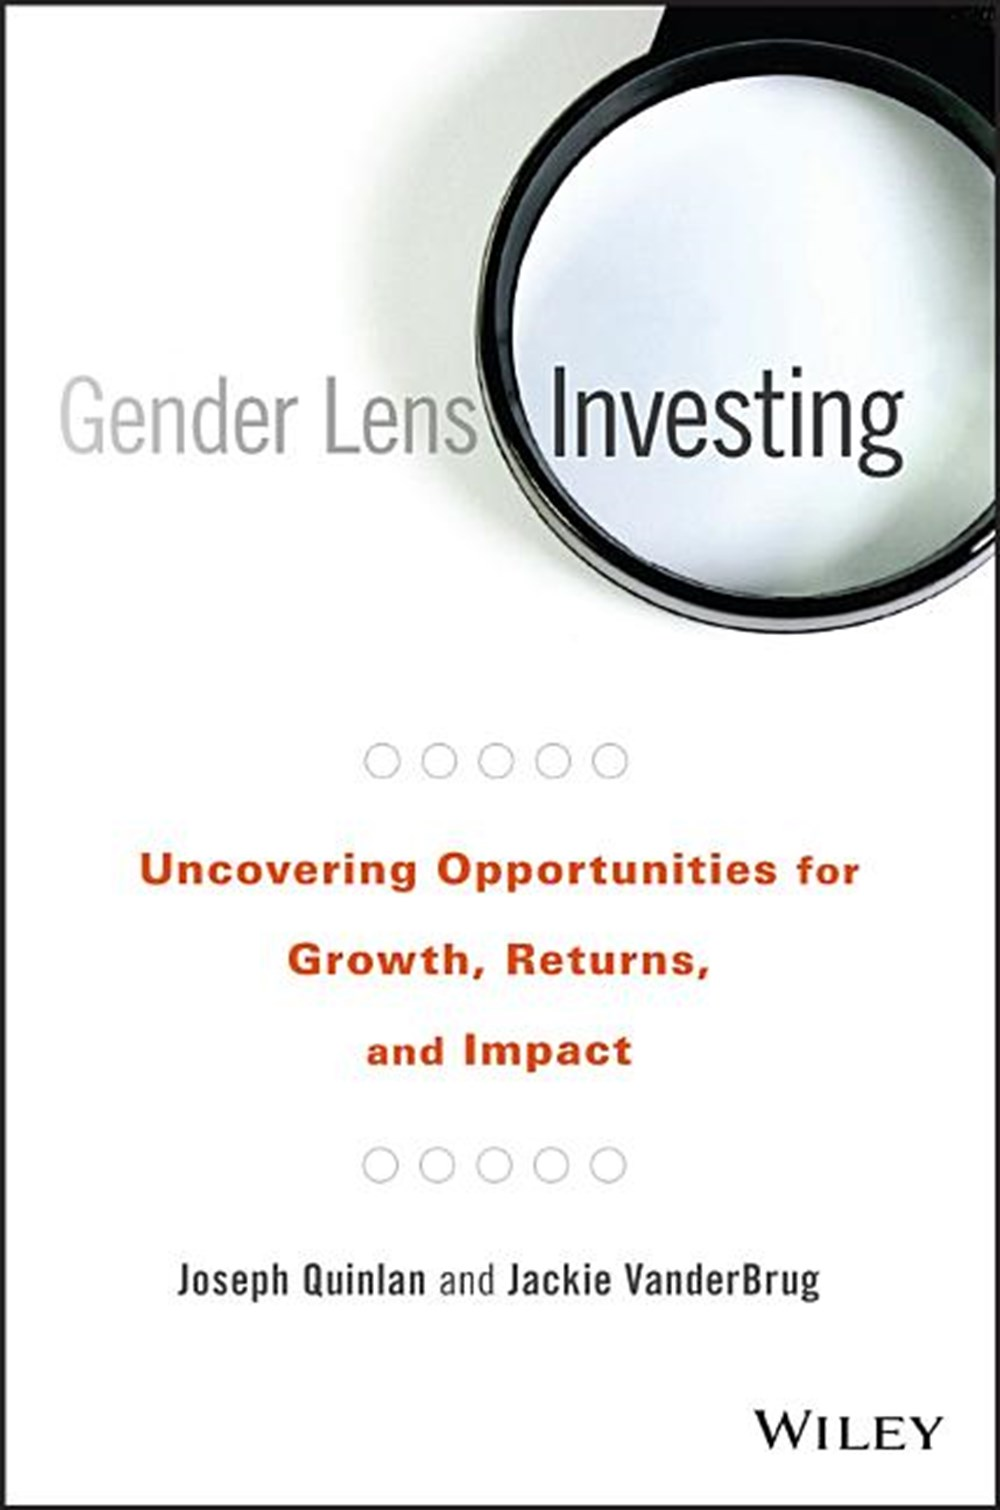 Gender Lens Investing Uncovering Opportunities for Growth, Returns, and Impact